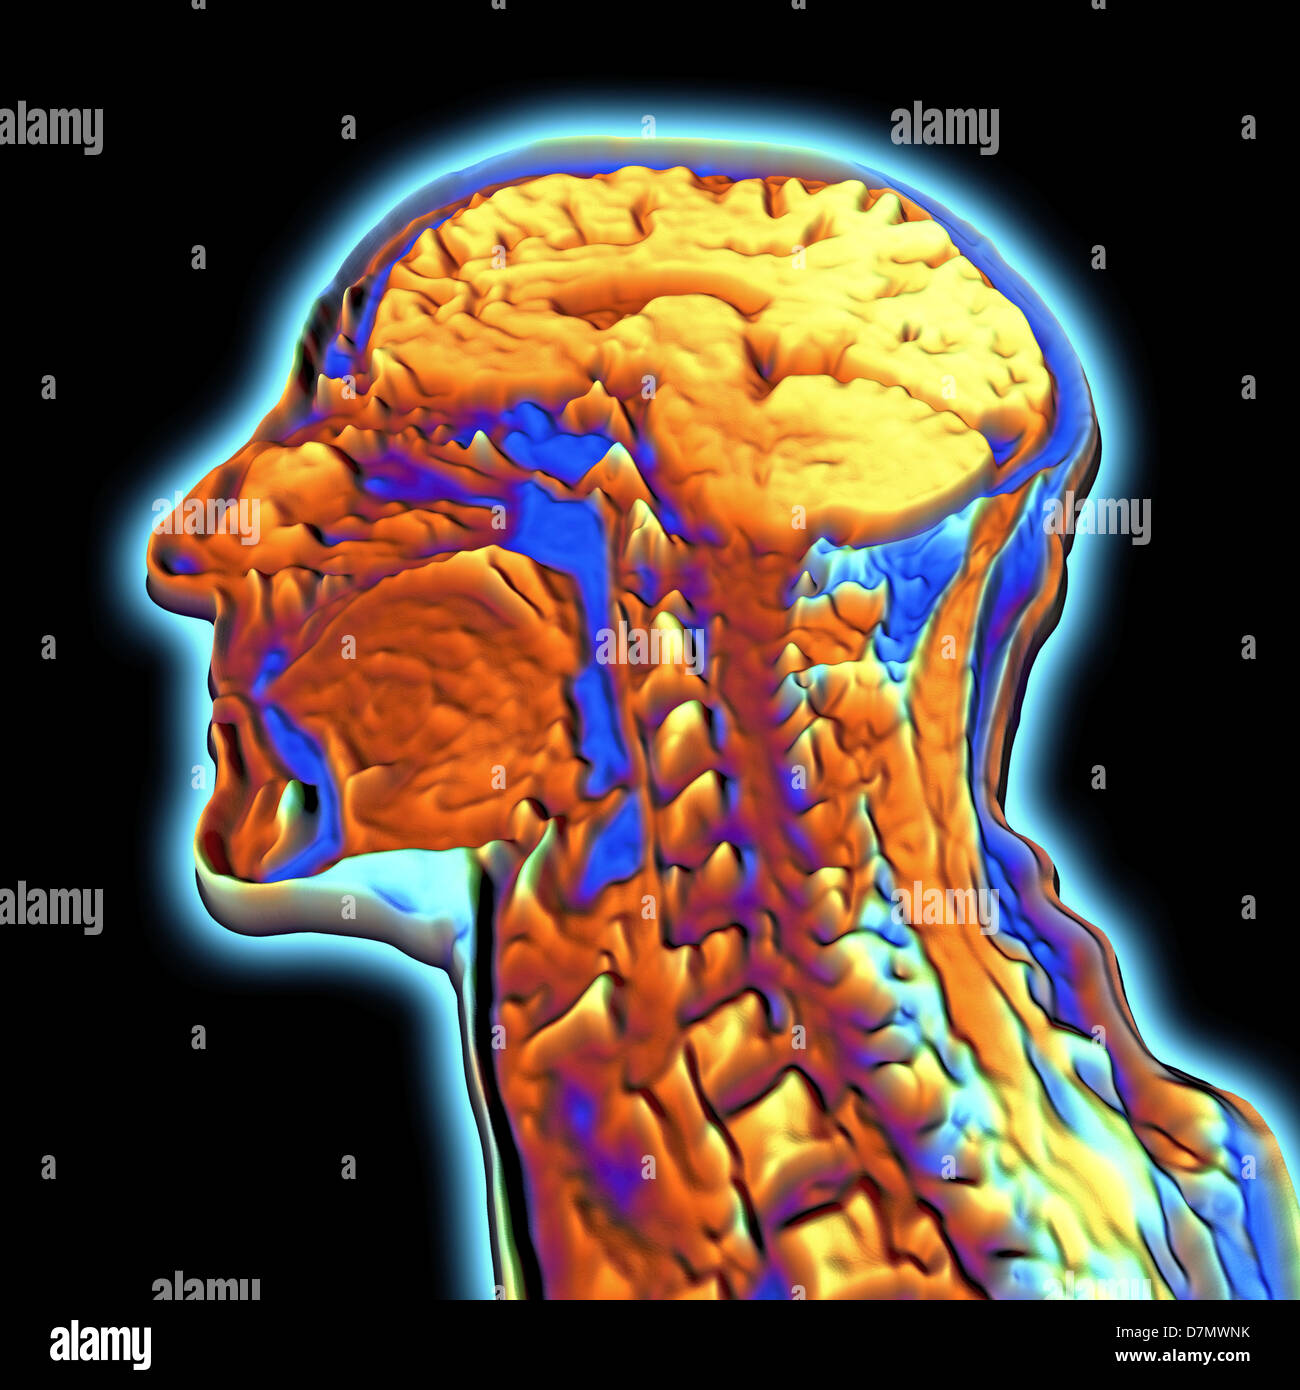 Coloured MRI scan of the human hea - Stock Image